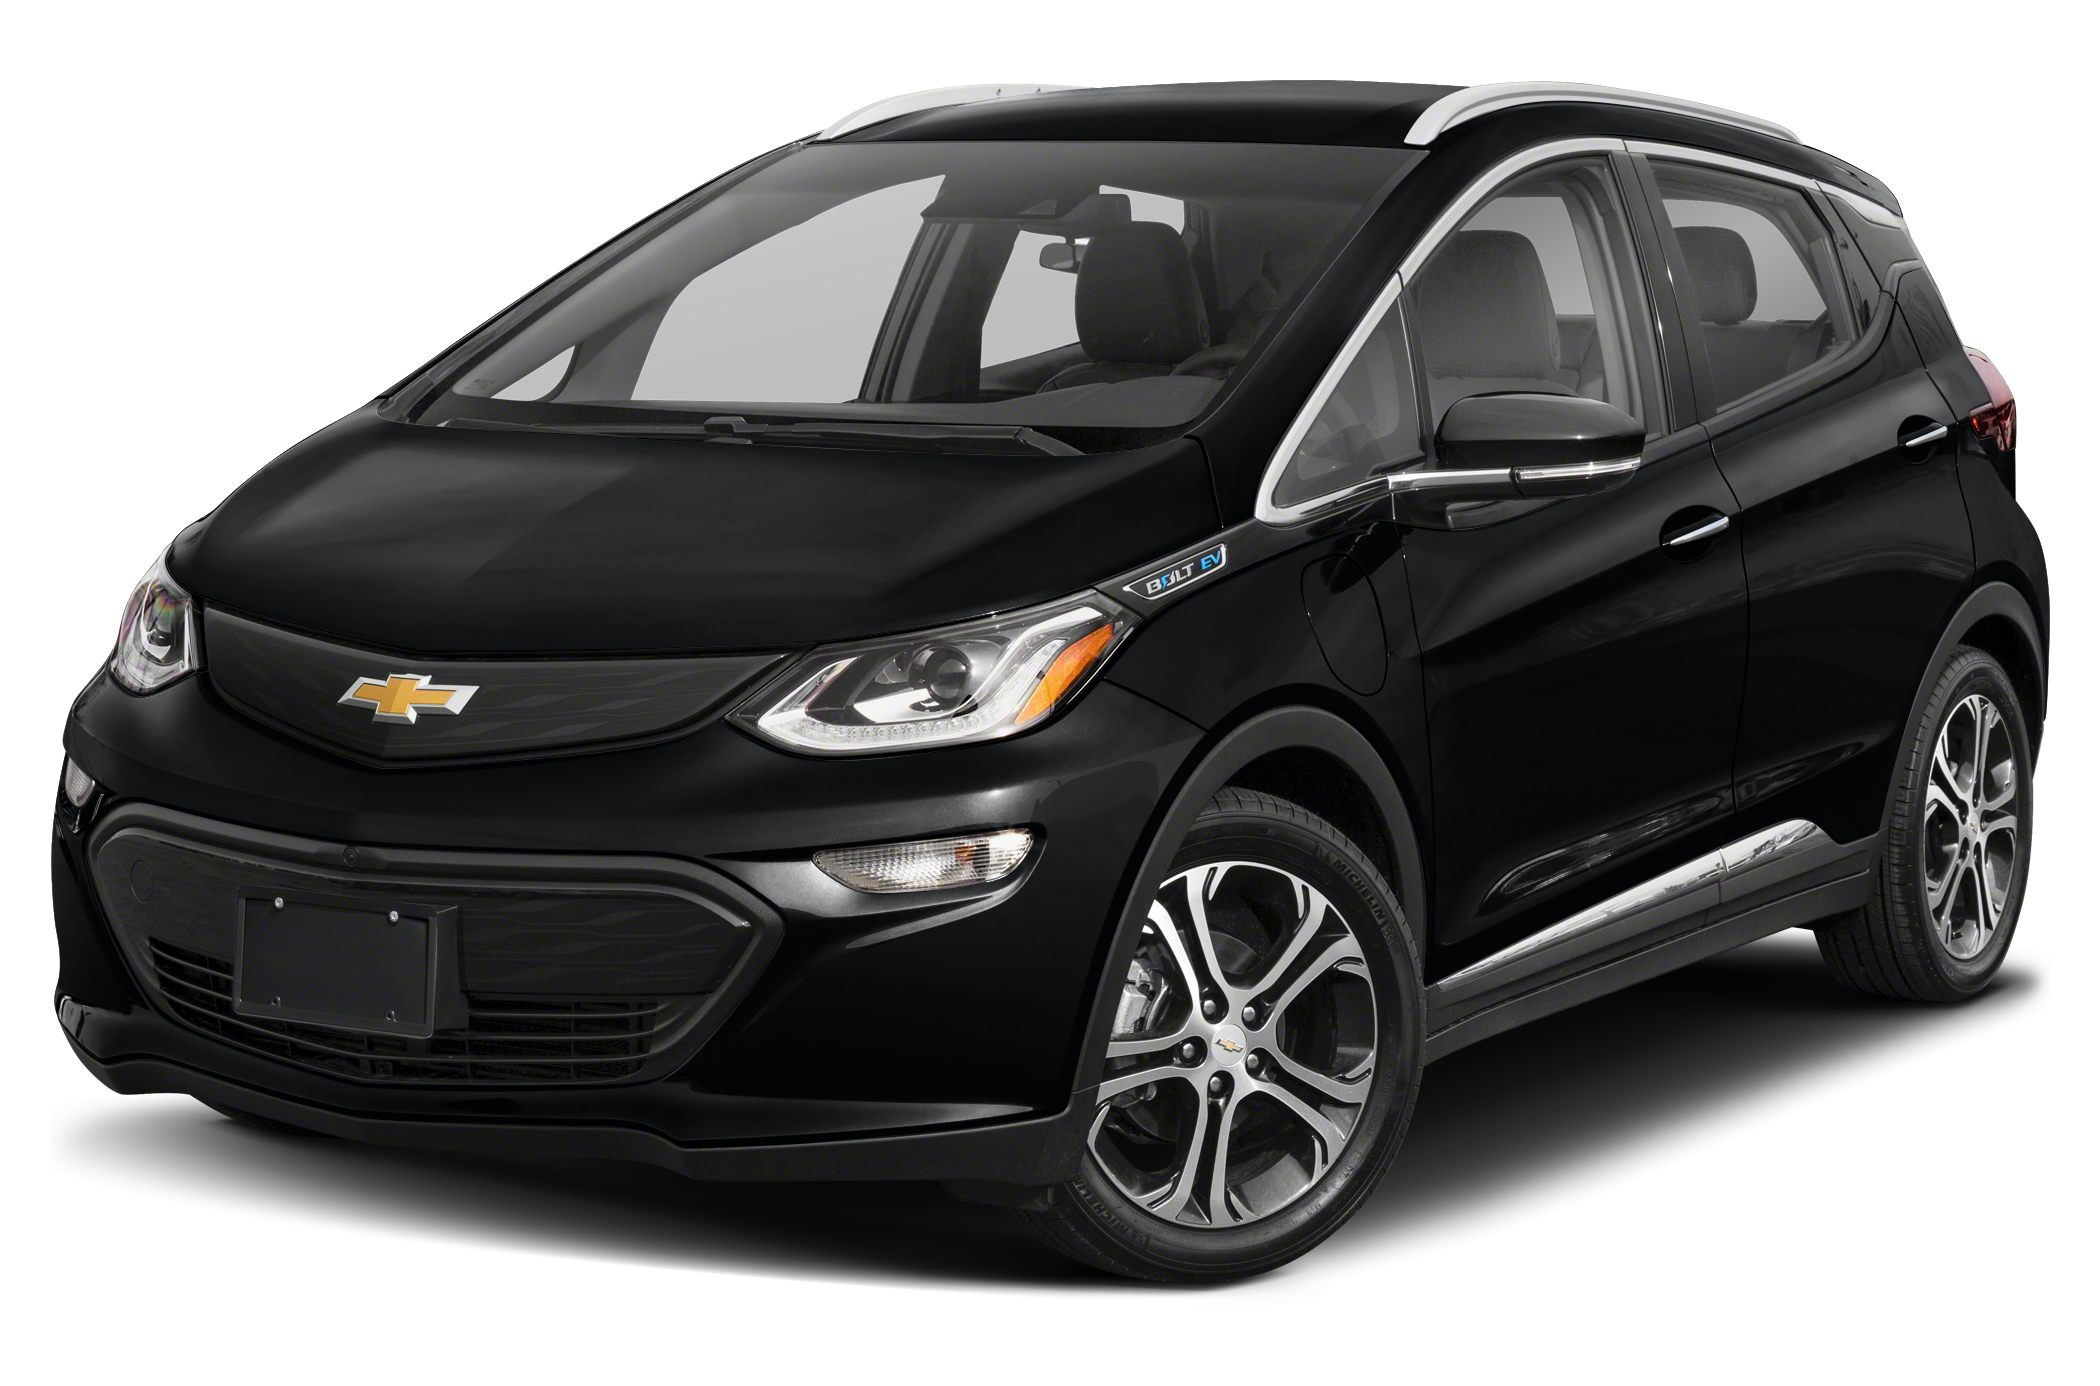 2017 Chevrolet Bolt EV Premier 1799 off MSRP 2017 Chevrolet Bolt EV Premier 110128 HighwayCit